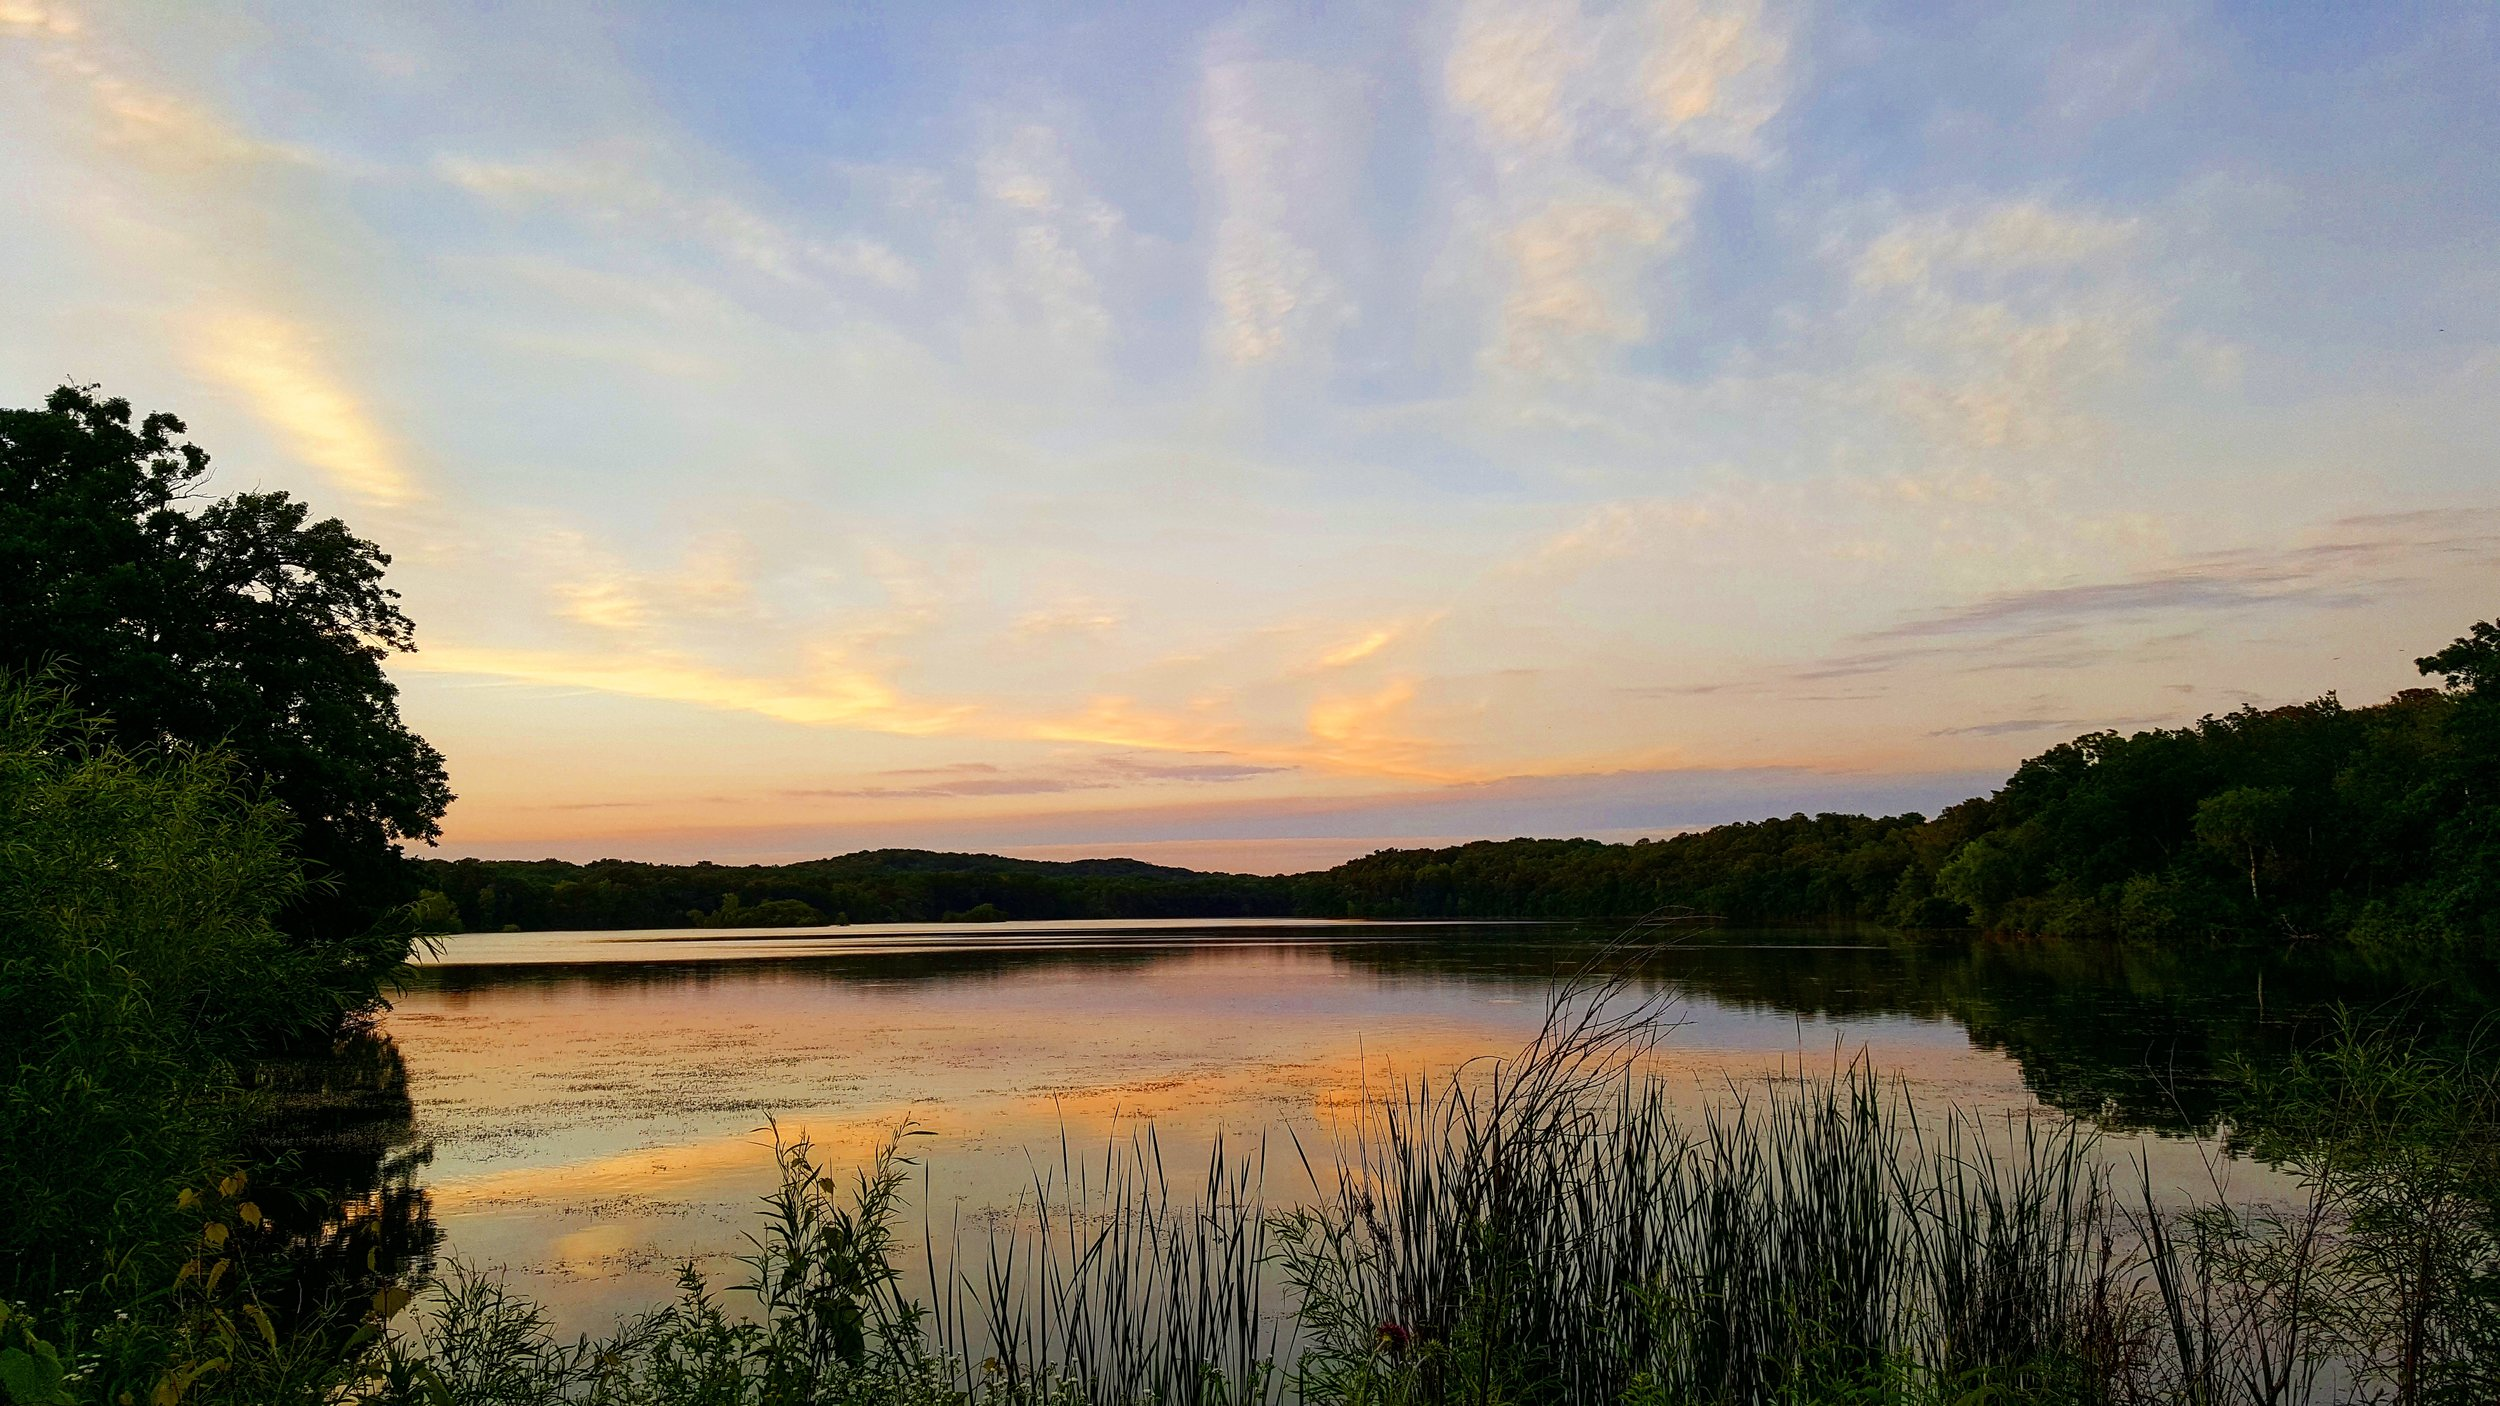 Sunset over Rice Lake in Whitewater, WI